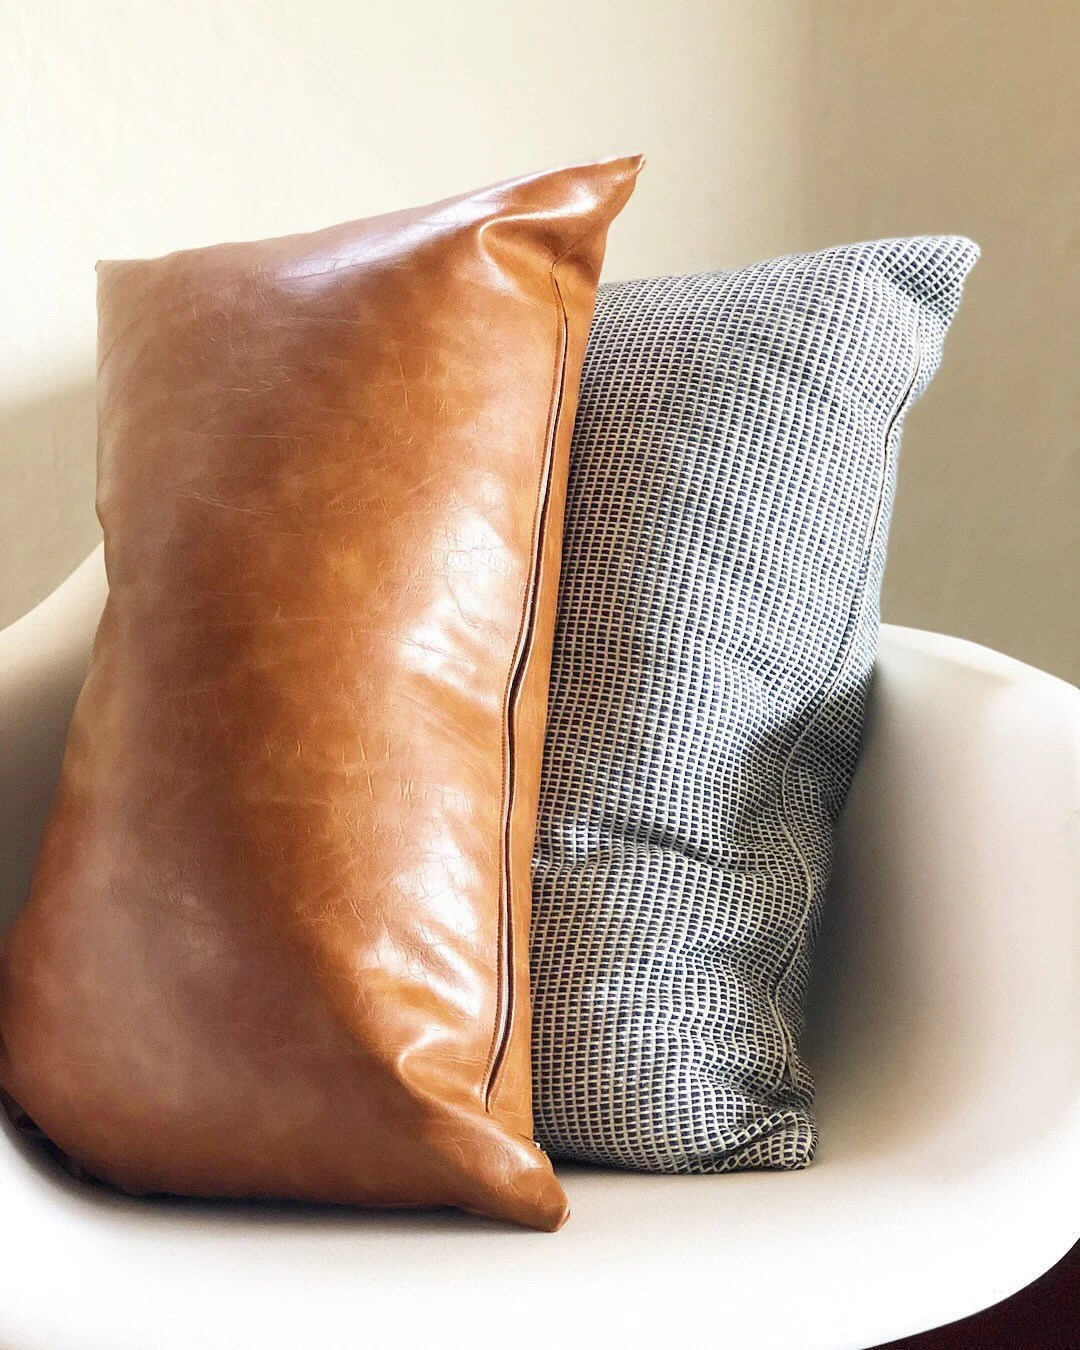 cognac faux leather lumbar pillow cover brown 14x24 inch hygge throw pillows mid century farmhouse decor rustic vegan leather